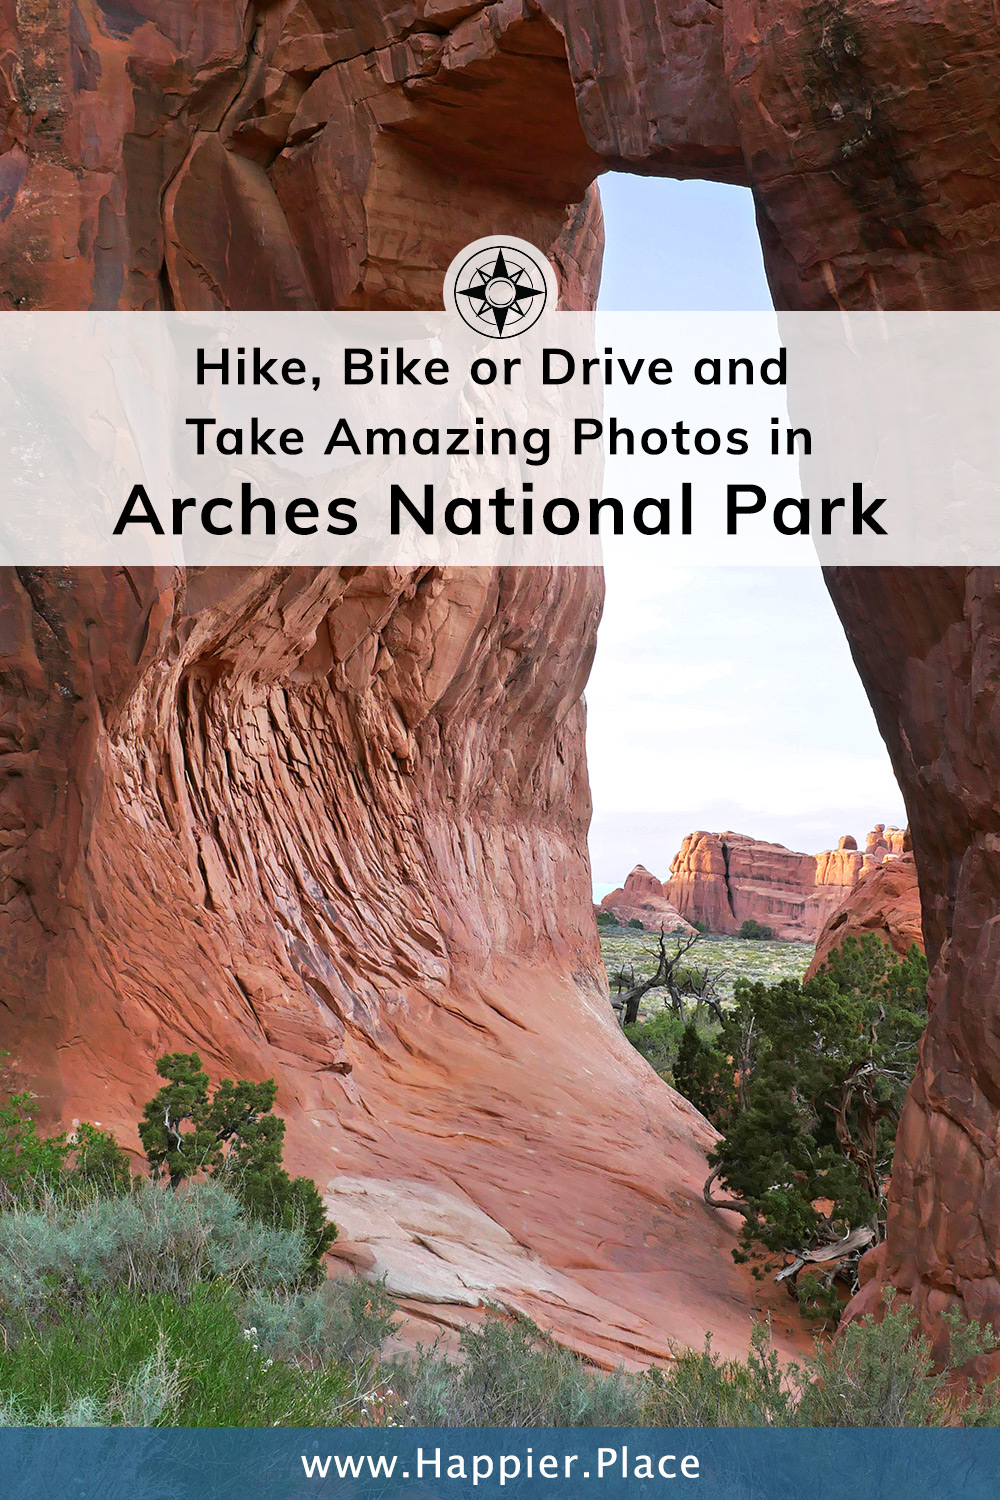 Hike, Bike or Drive and Take Amazing Photos in Arches National Park. #HappierPlace